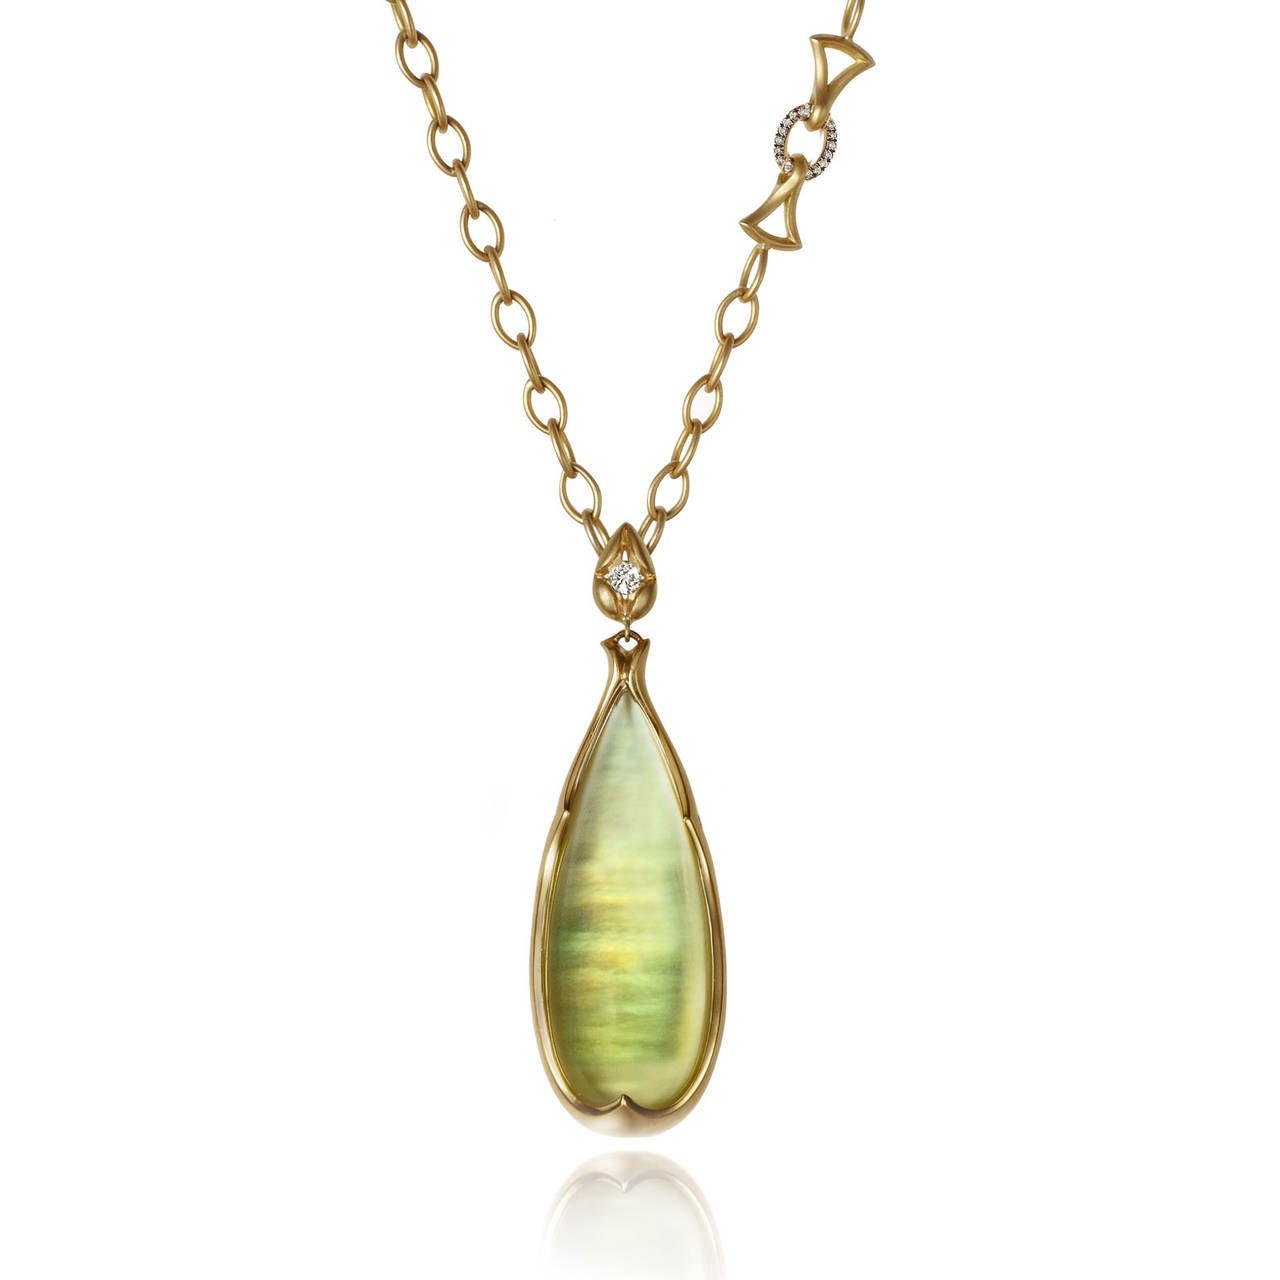 Extraordinary Iridescent Lemon Quartz Mother-of-Pearl Diamond Gold Necklace 2